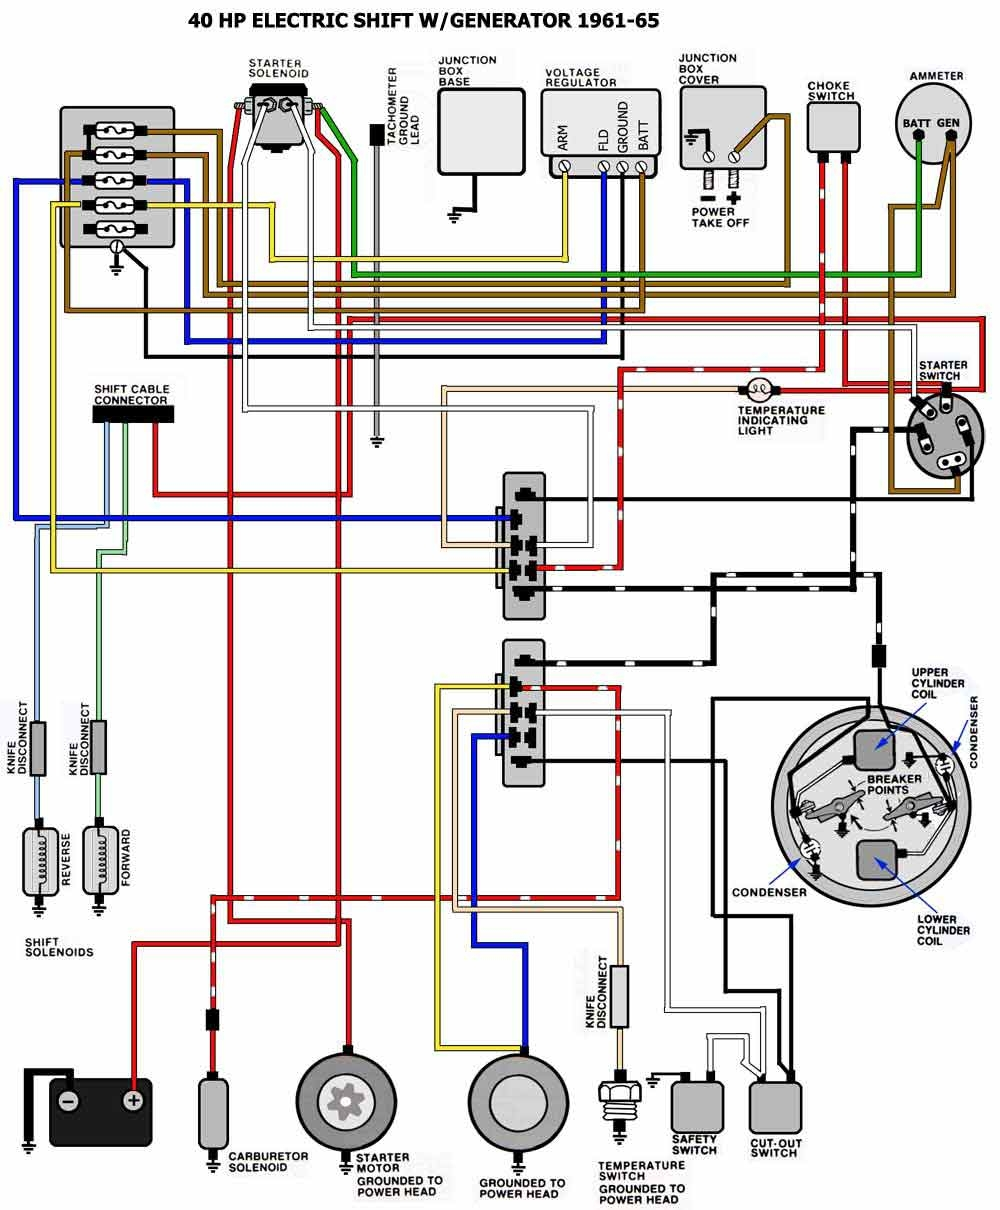 mercury outboard wiring diagram ignition switch | free ... wiring diagram for mercury ignition switch